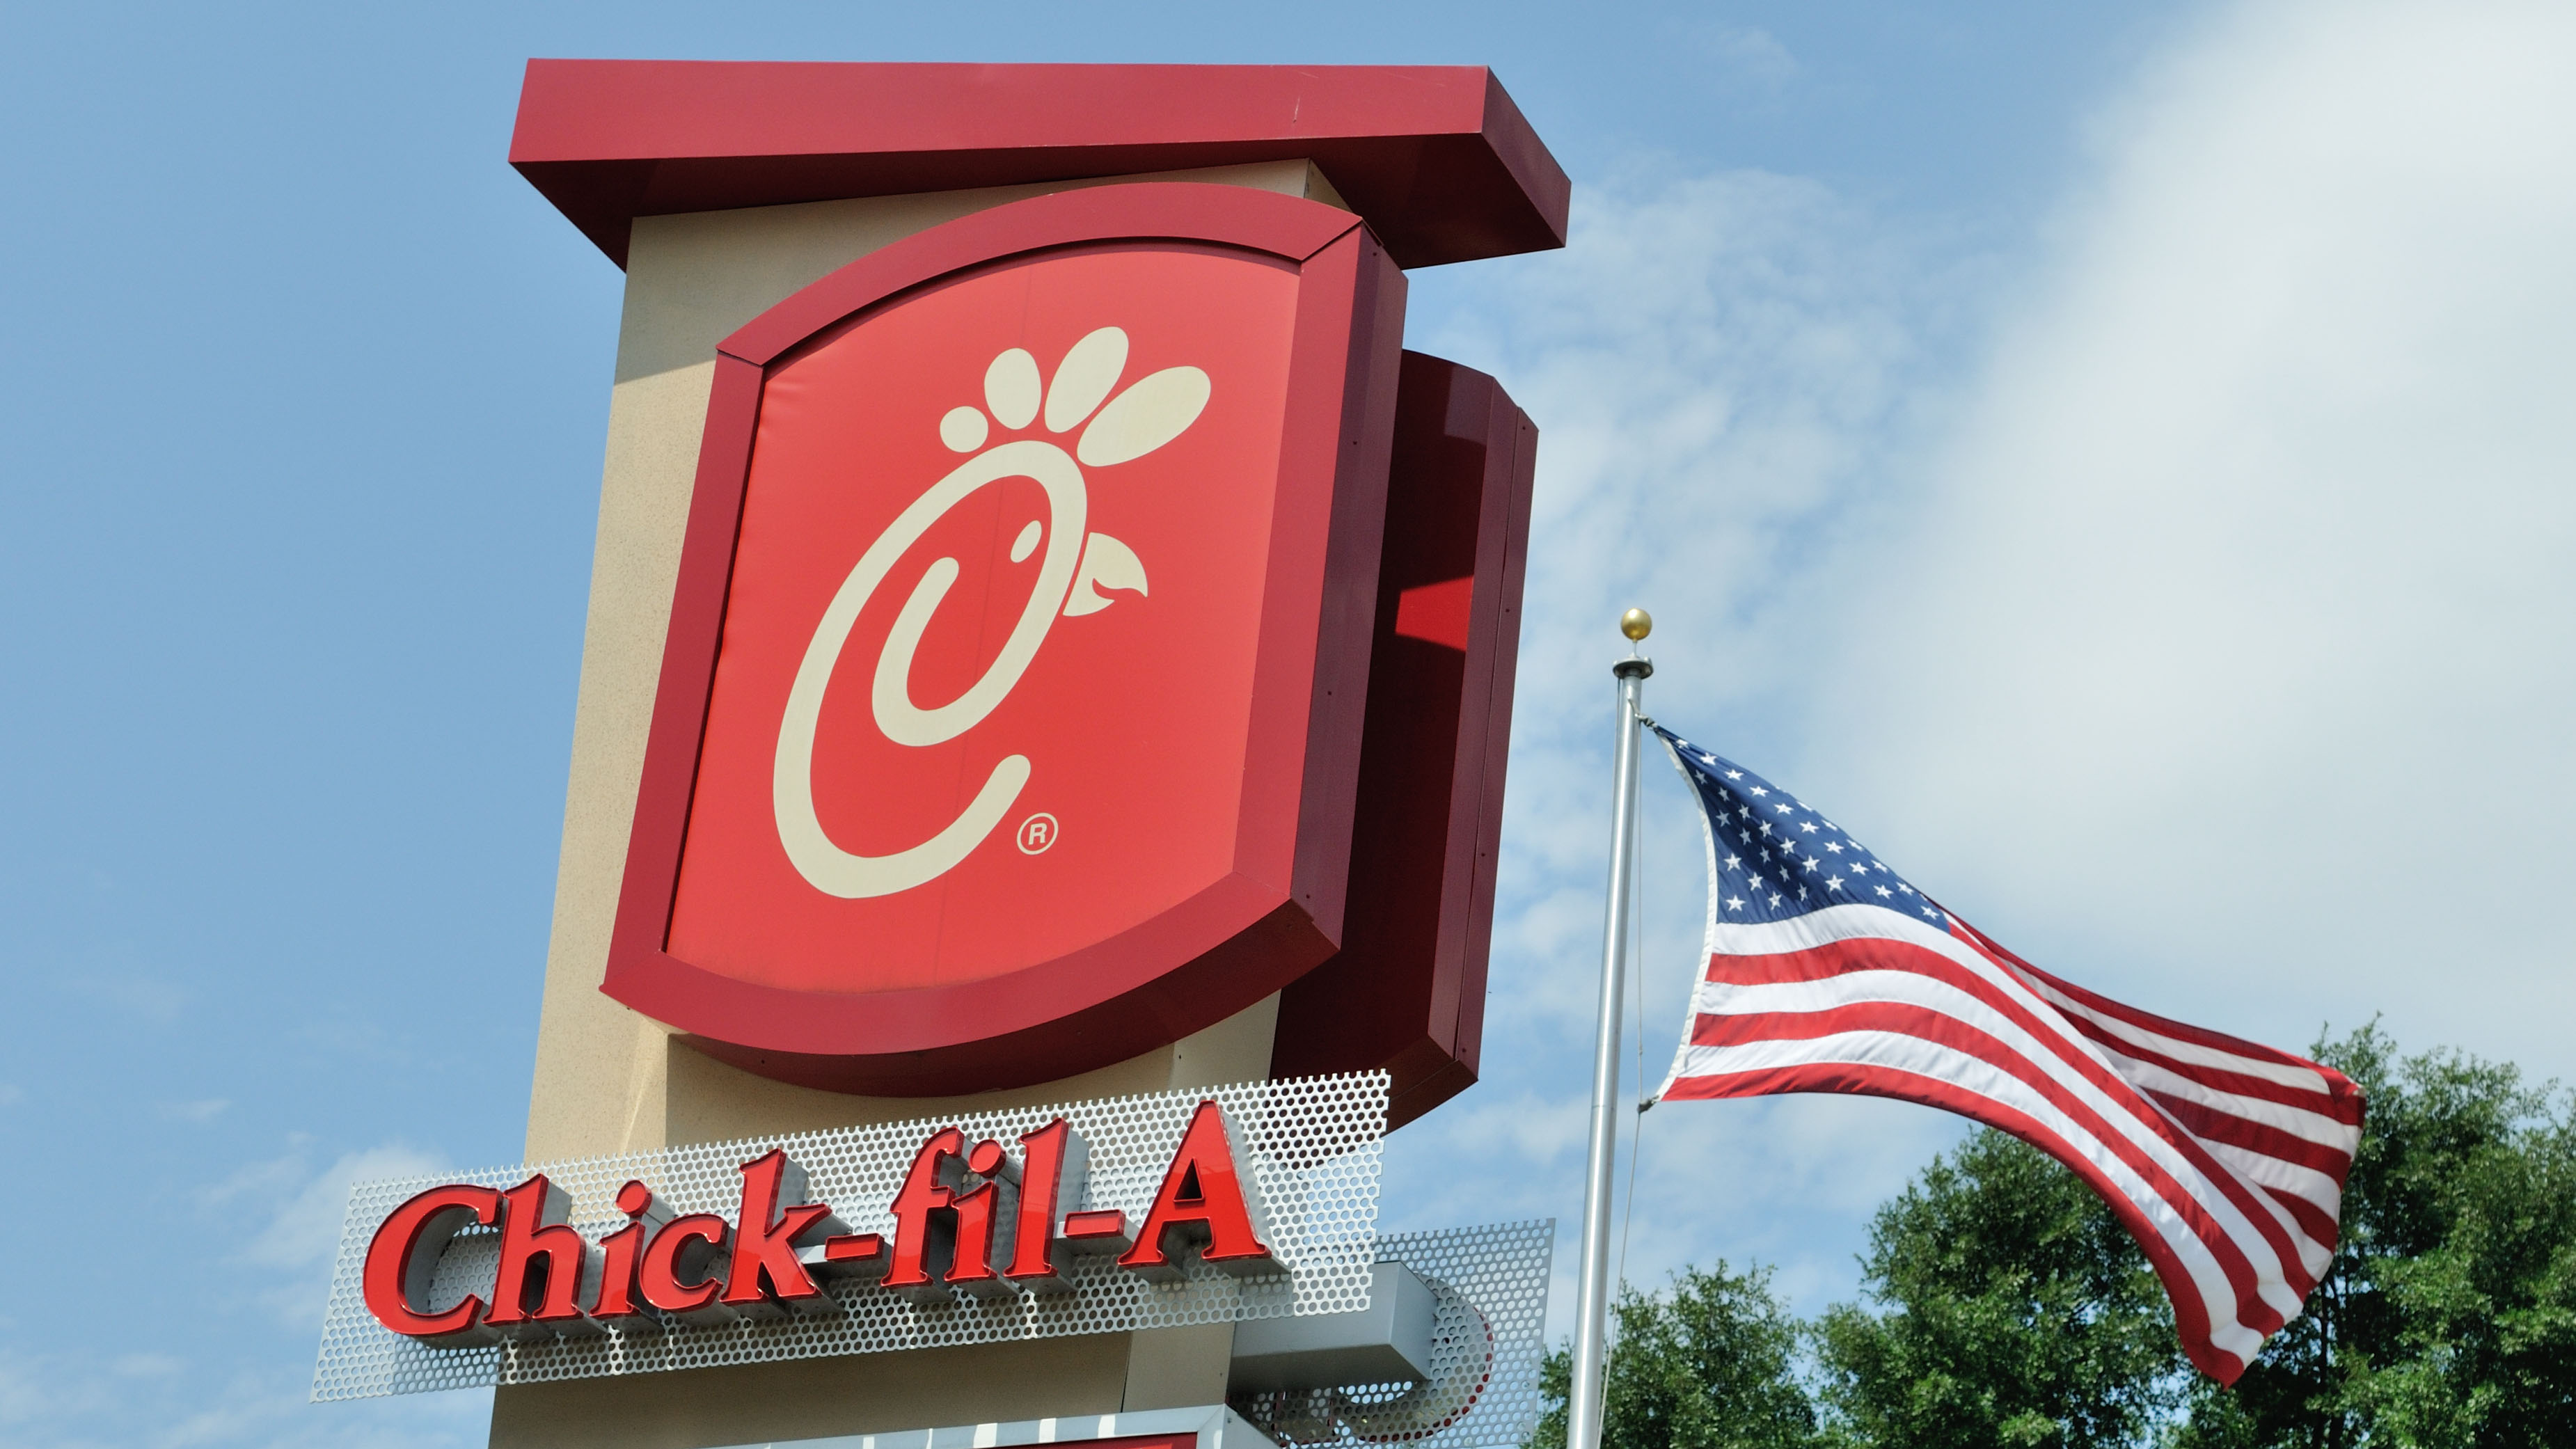 Texas AG: Chick-fil-A to be offered lease in San Antonio airport follo... image